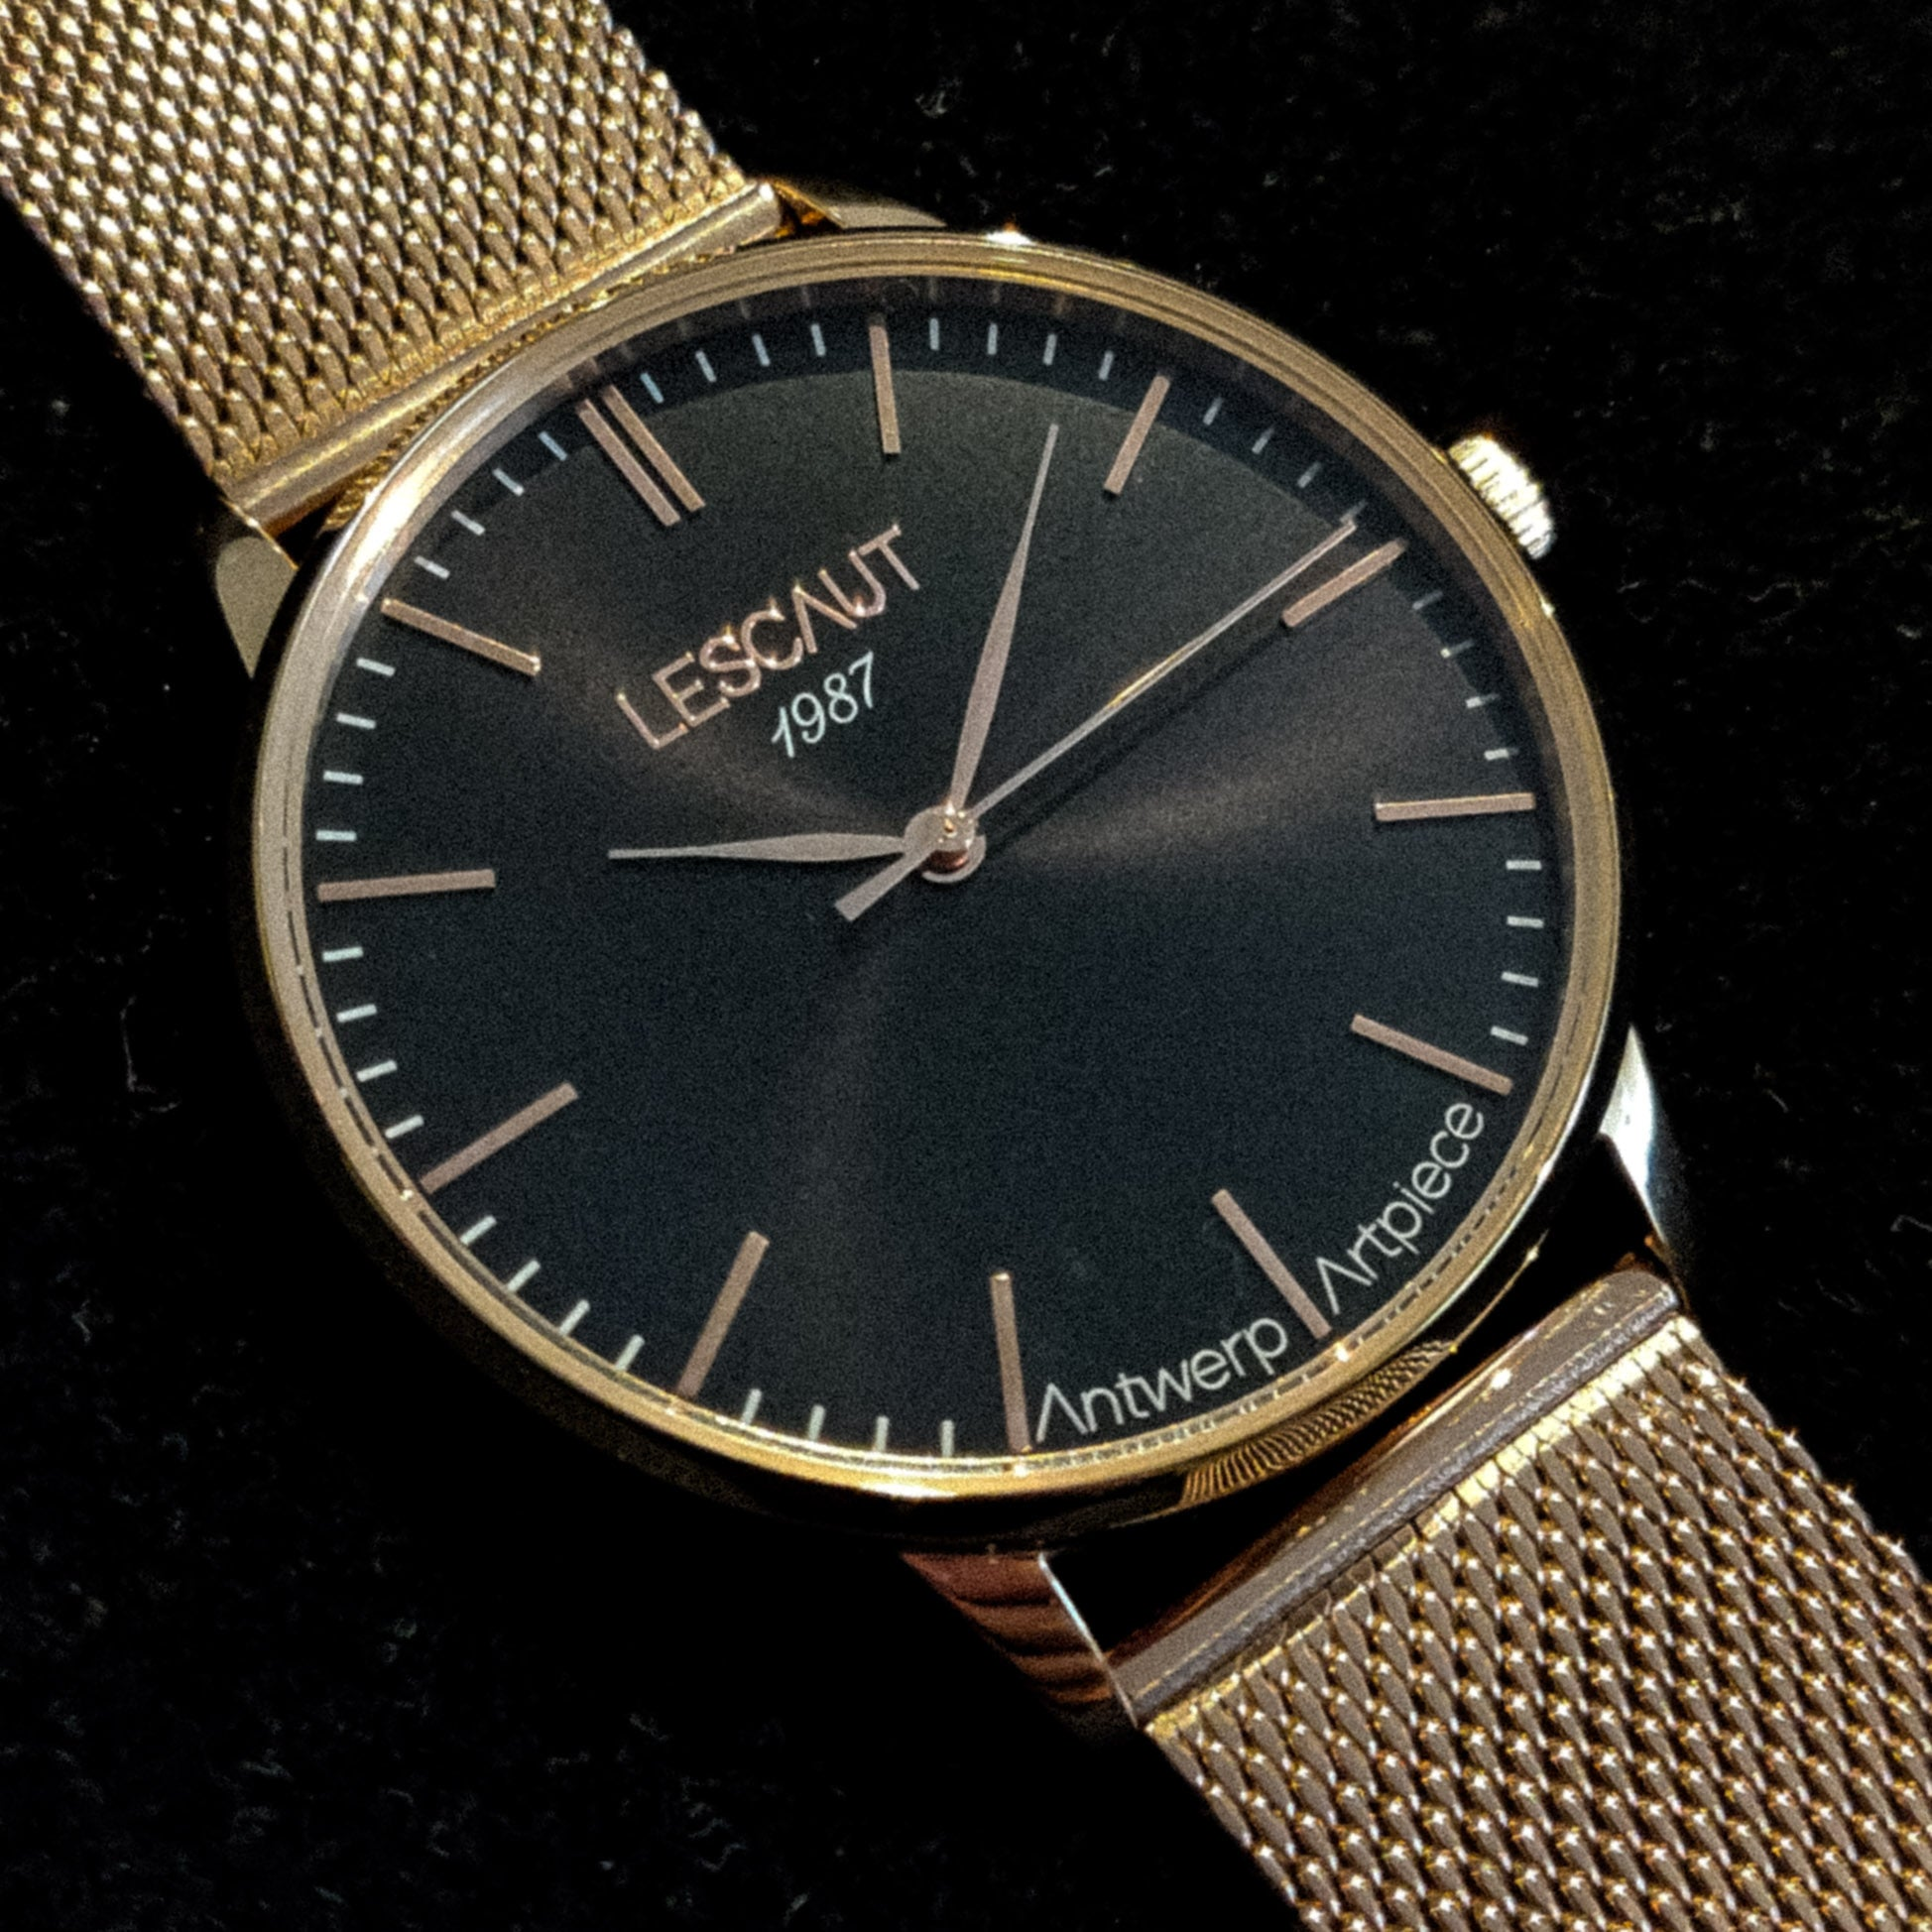 LESCAUT horloge the pink mavin close-up quartz zwarte wijzerplaat roze gouden horlogekast roze goud Milanese bandje pink gold case deep black dial pink gold mesh watch strap